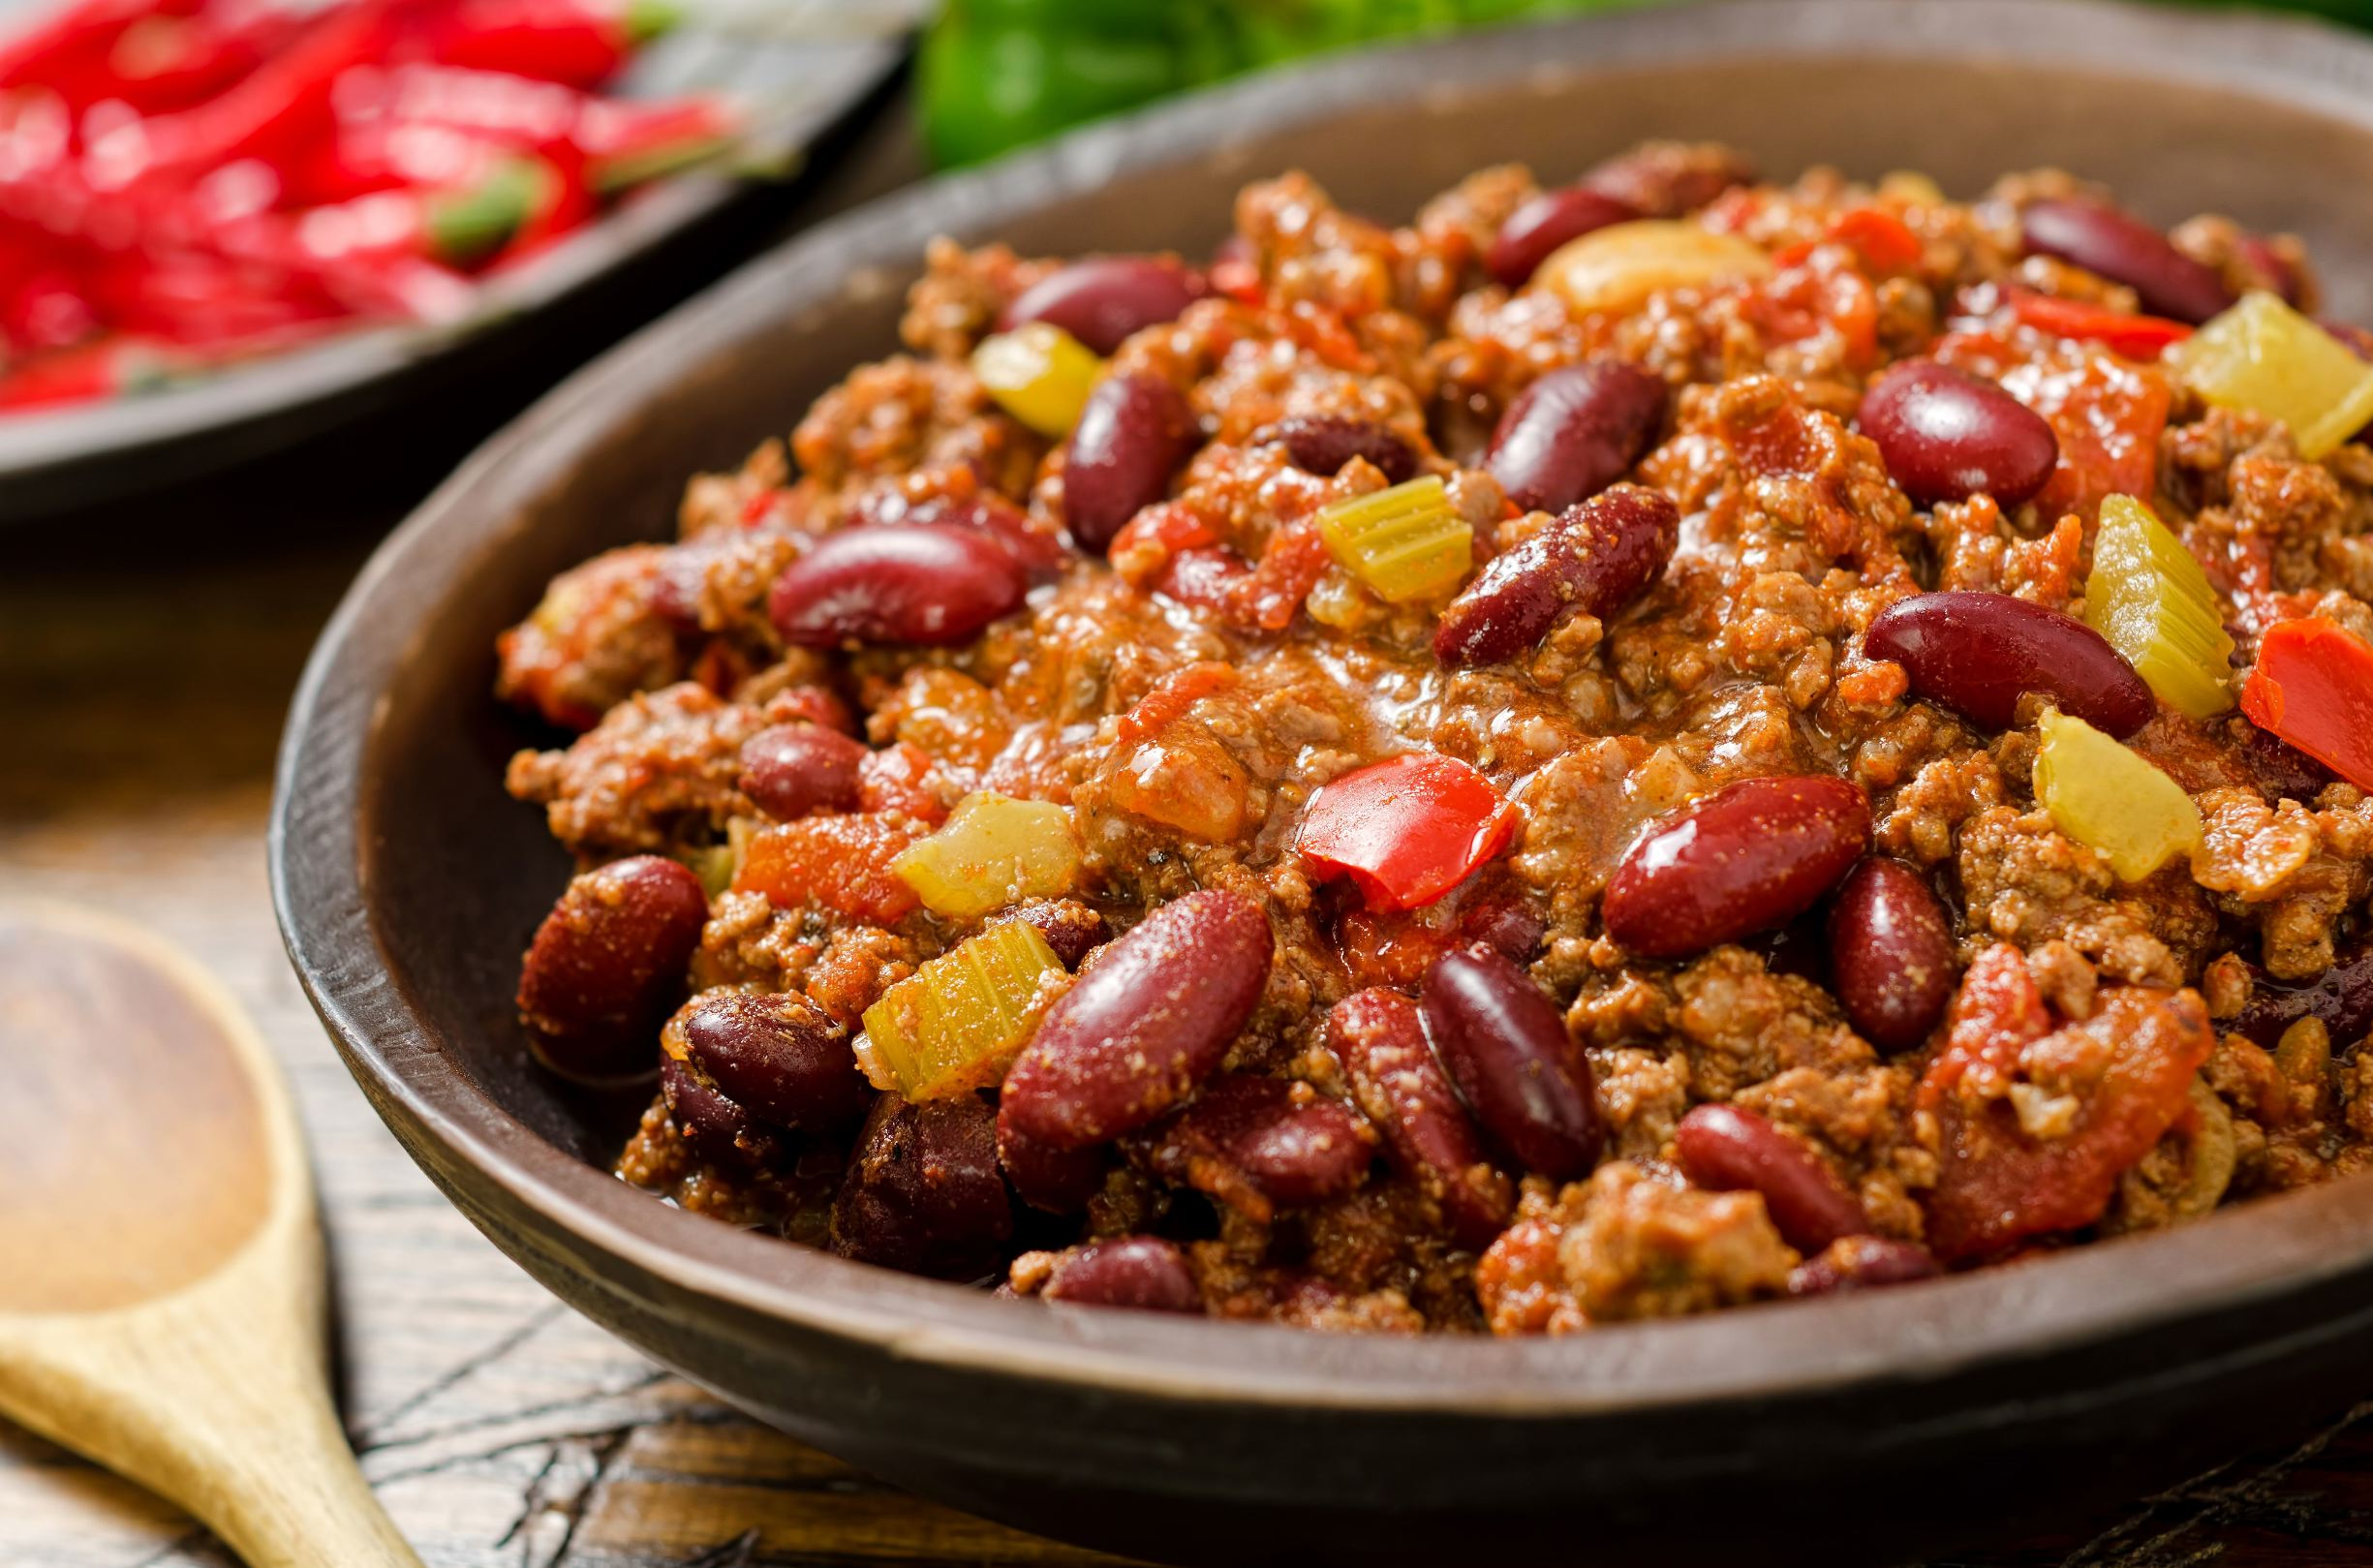 ... chilli sauce carne asada chili con carne a bowl of chili con carne and